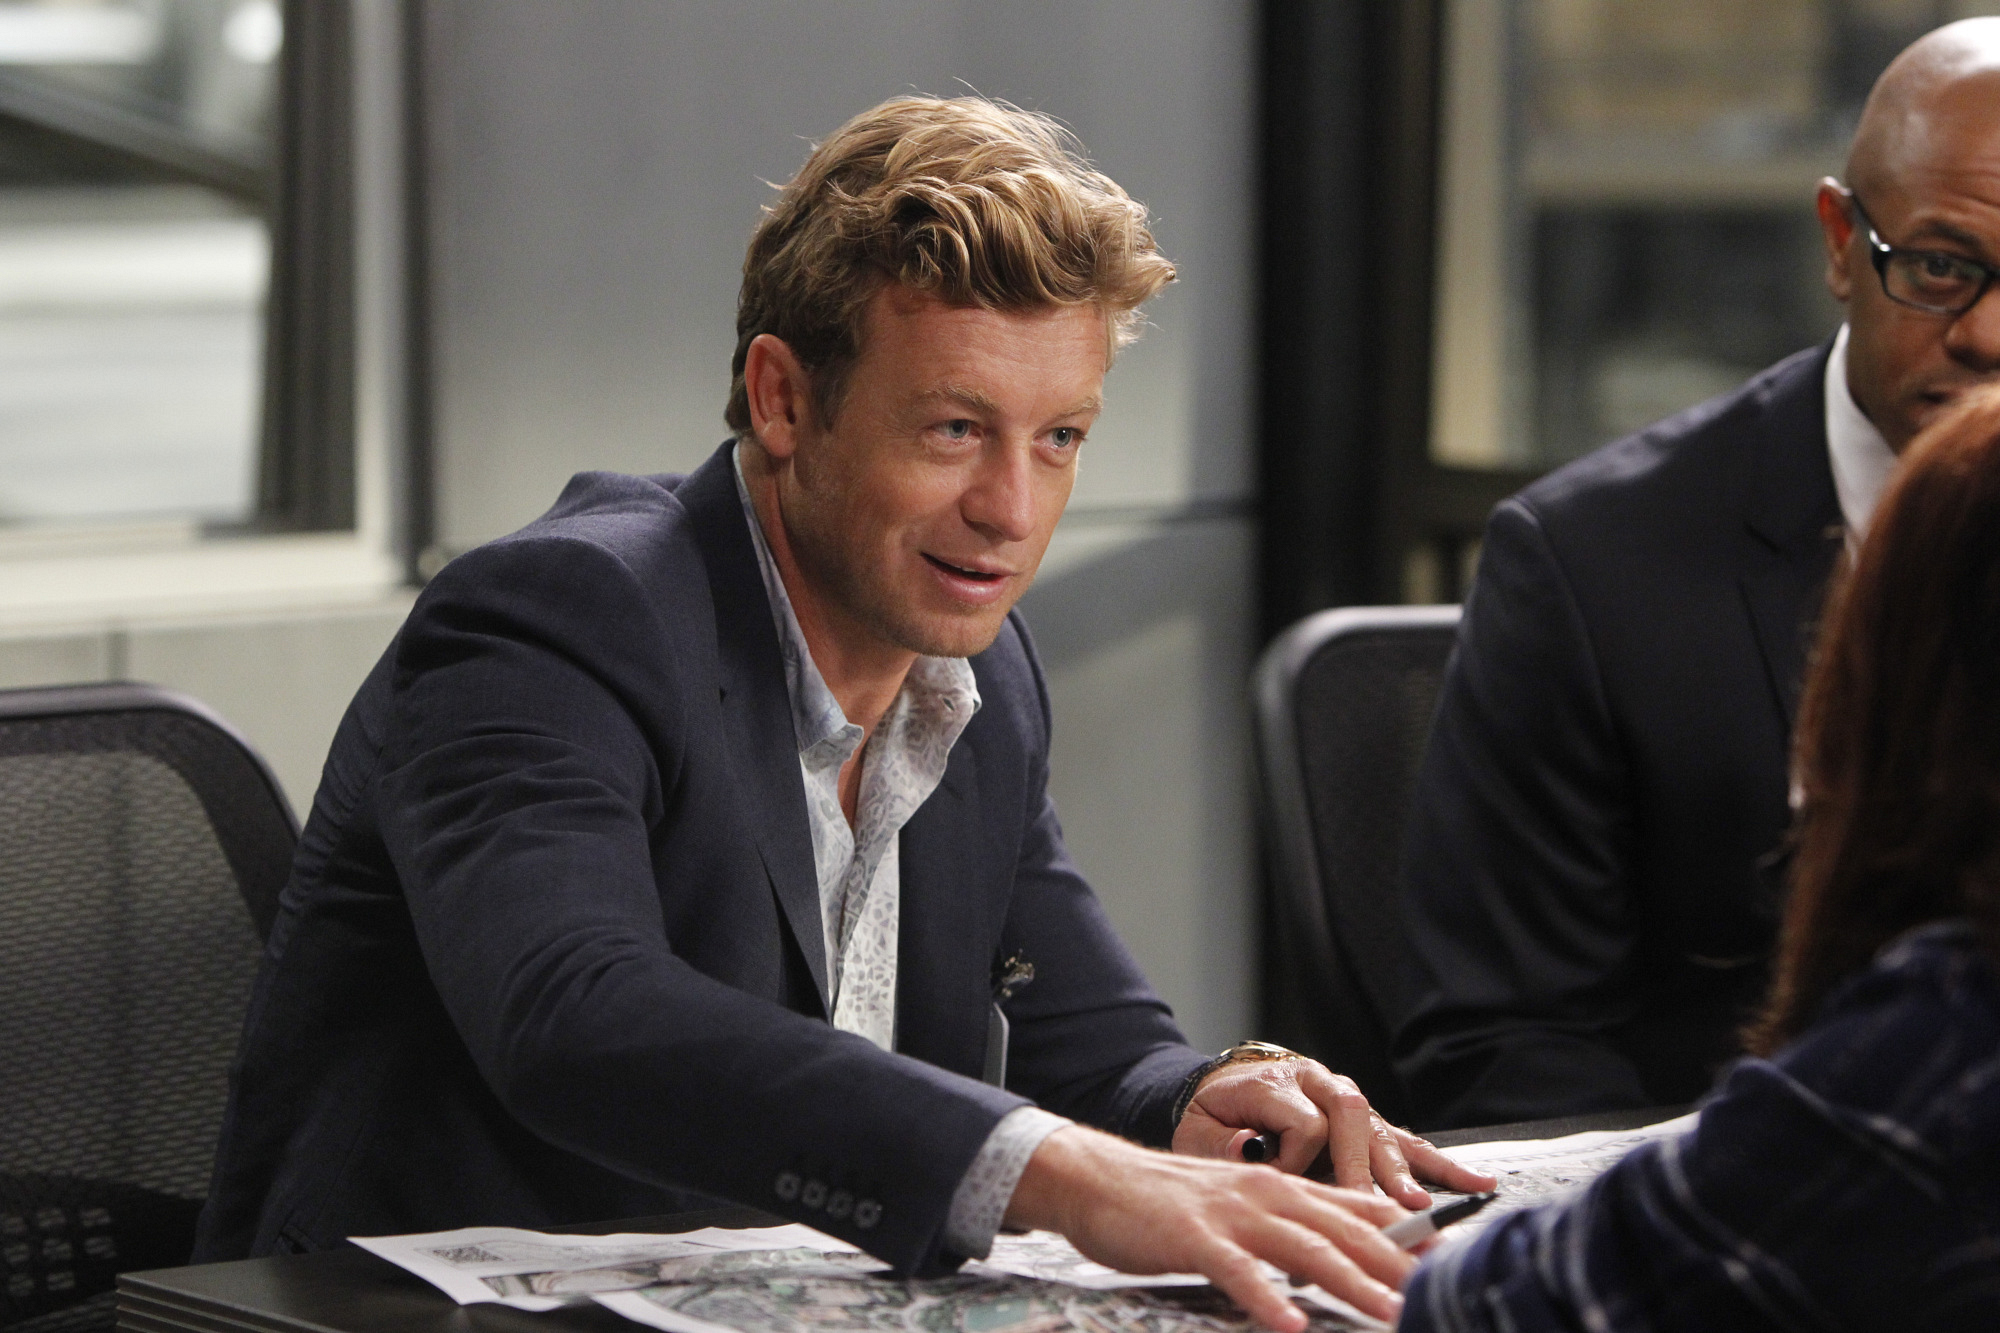 Naughty - Patrick Jane from The Mentalist